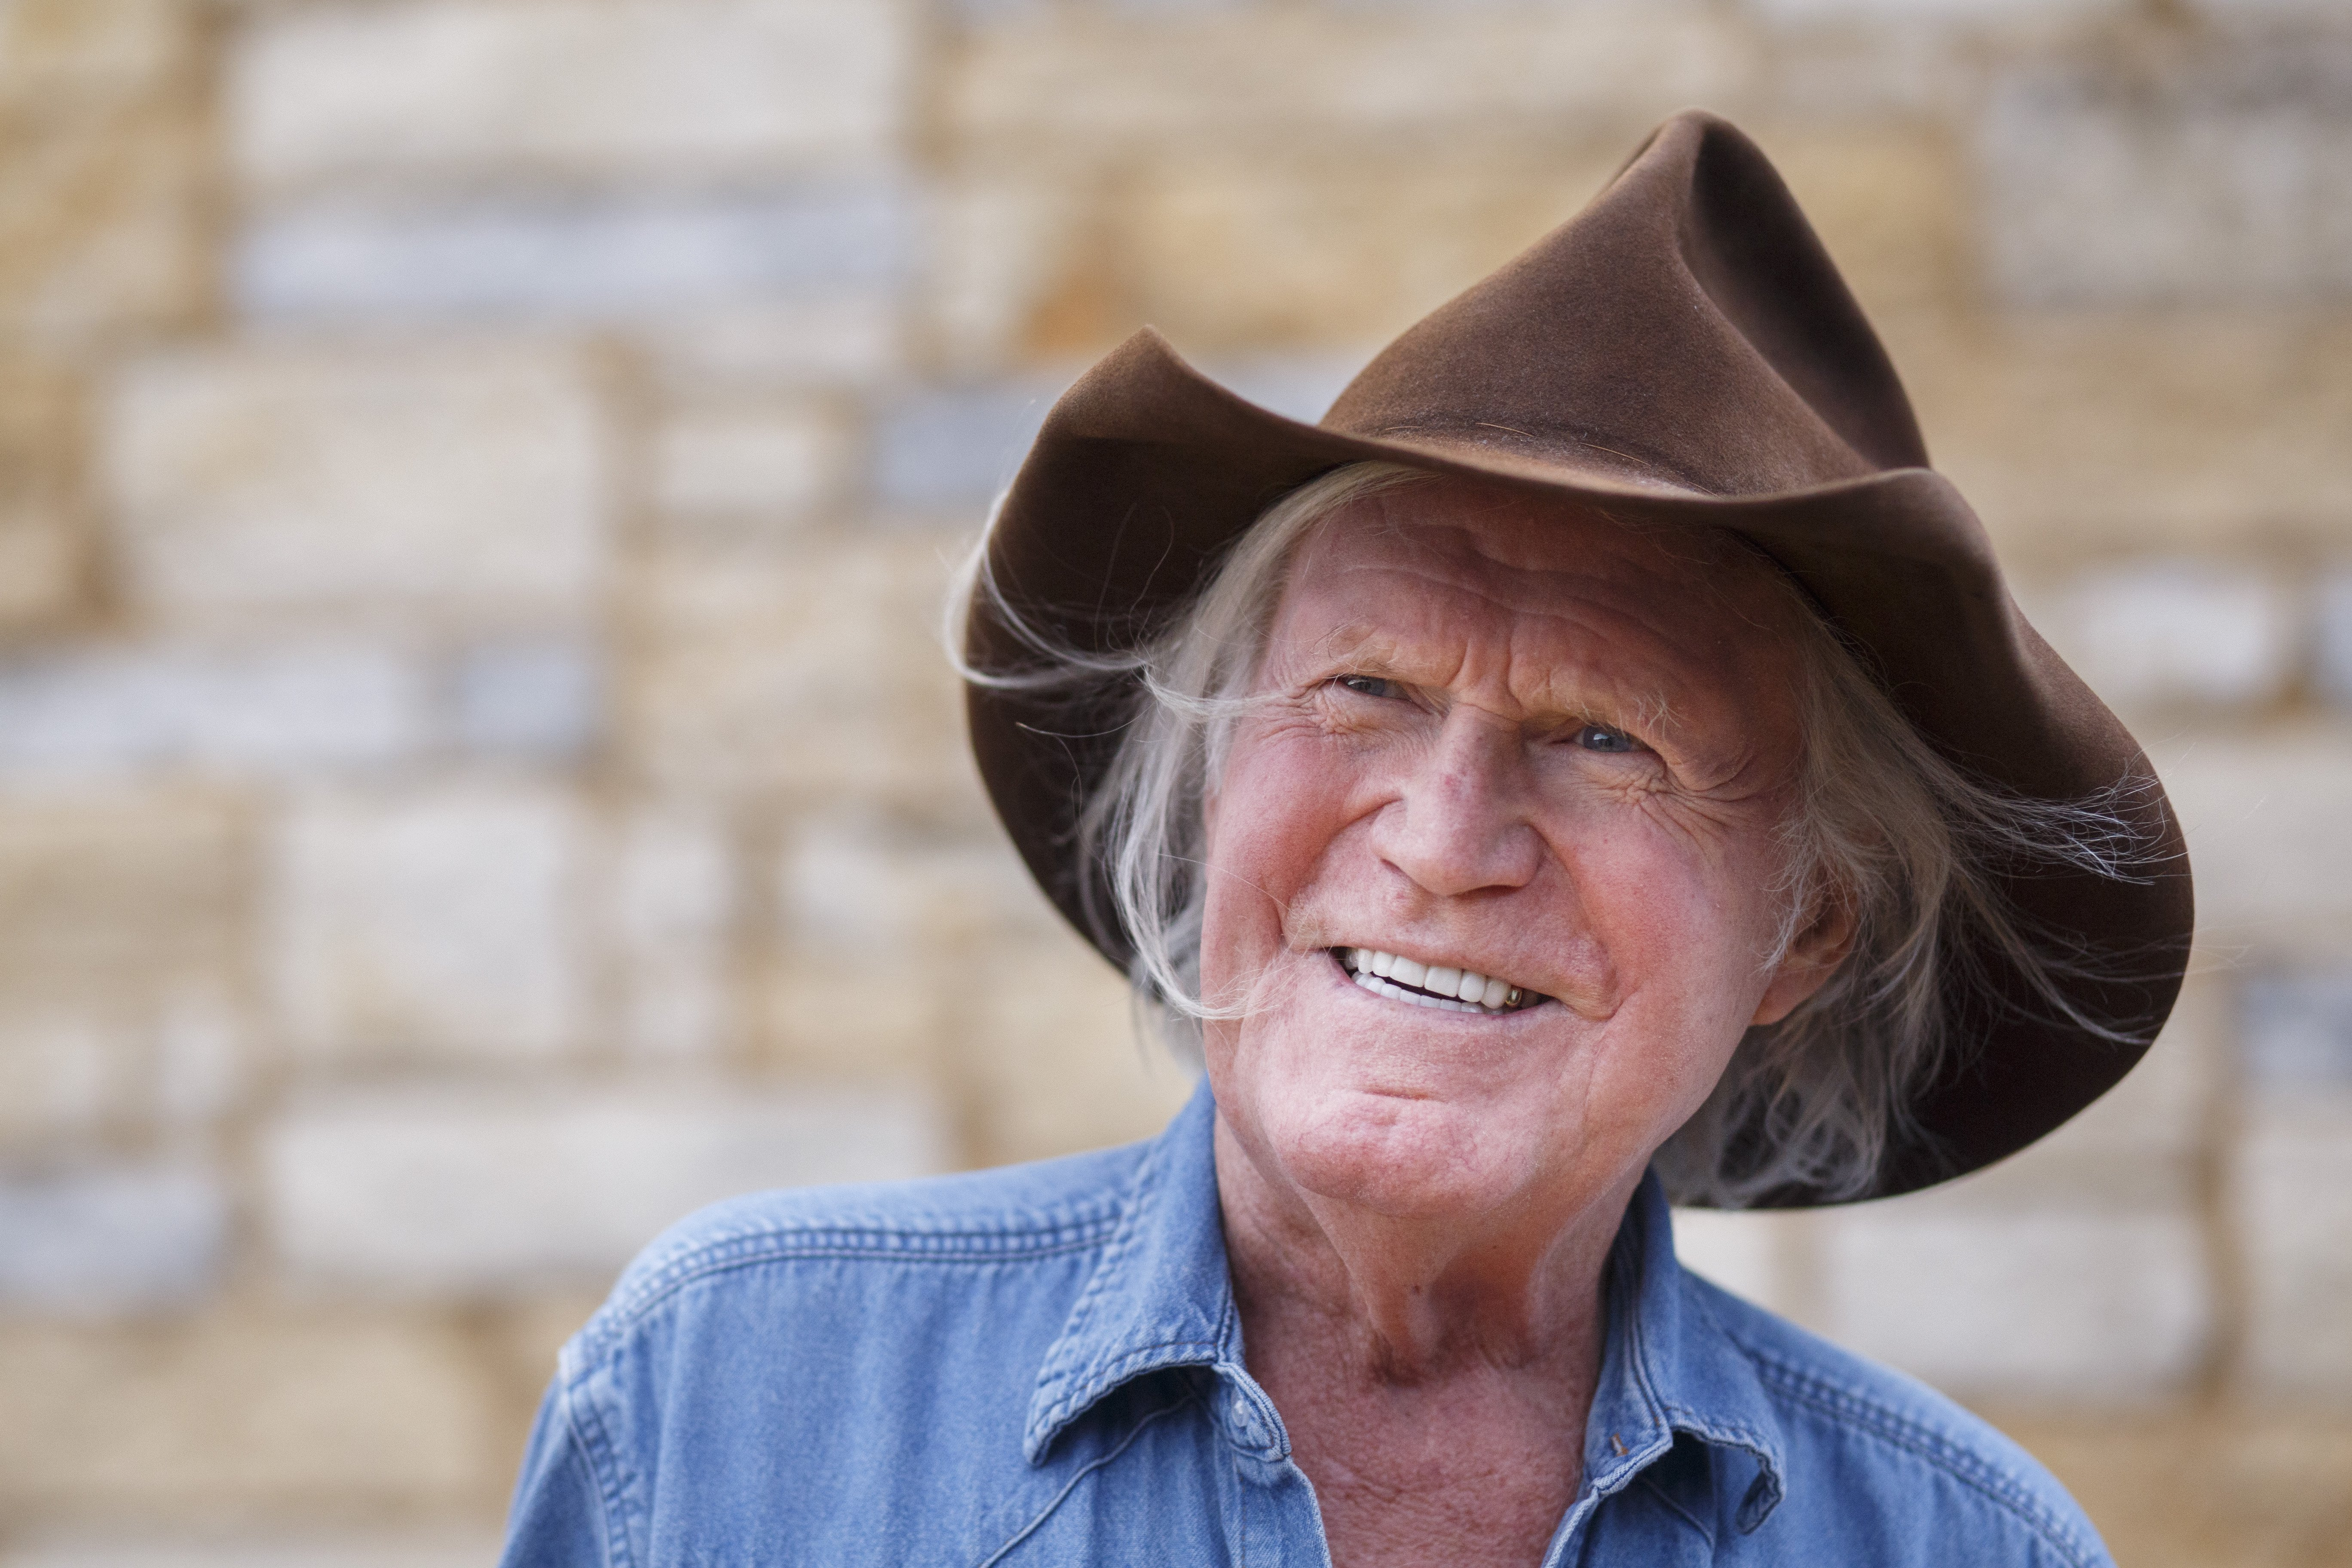 Billy Joe Shaver at the Redneck Country Club in Stafford, Texas Nov. 18, 2016. | Source: Getty Images.